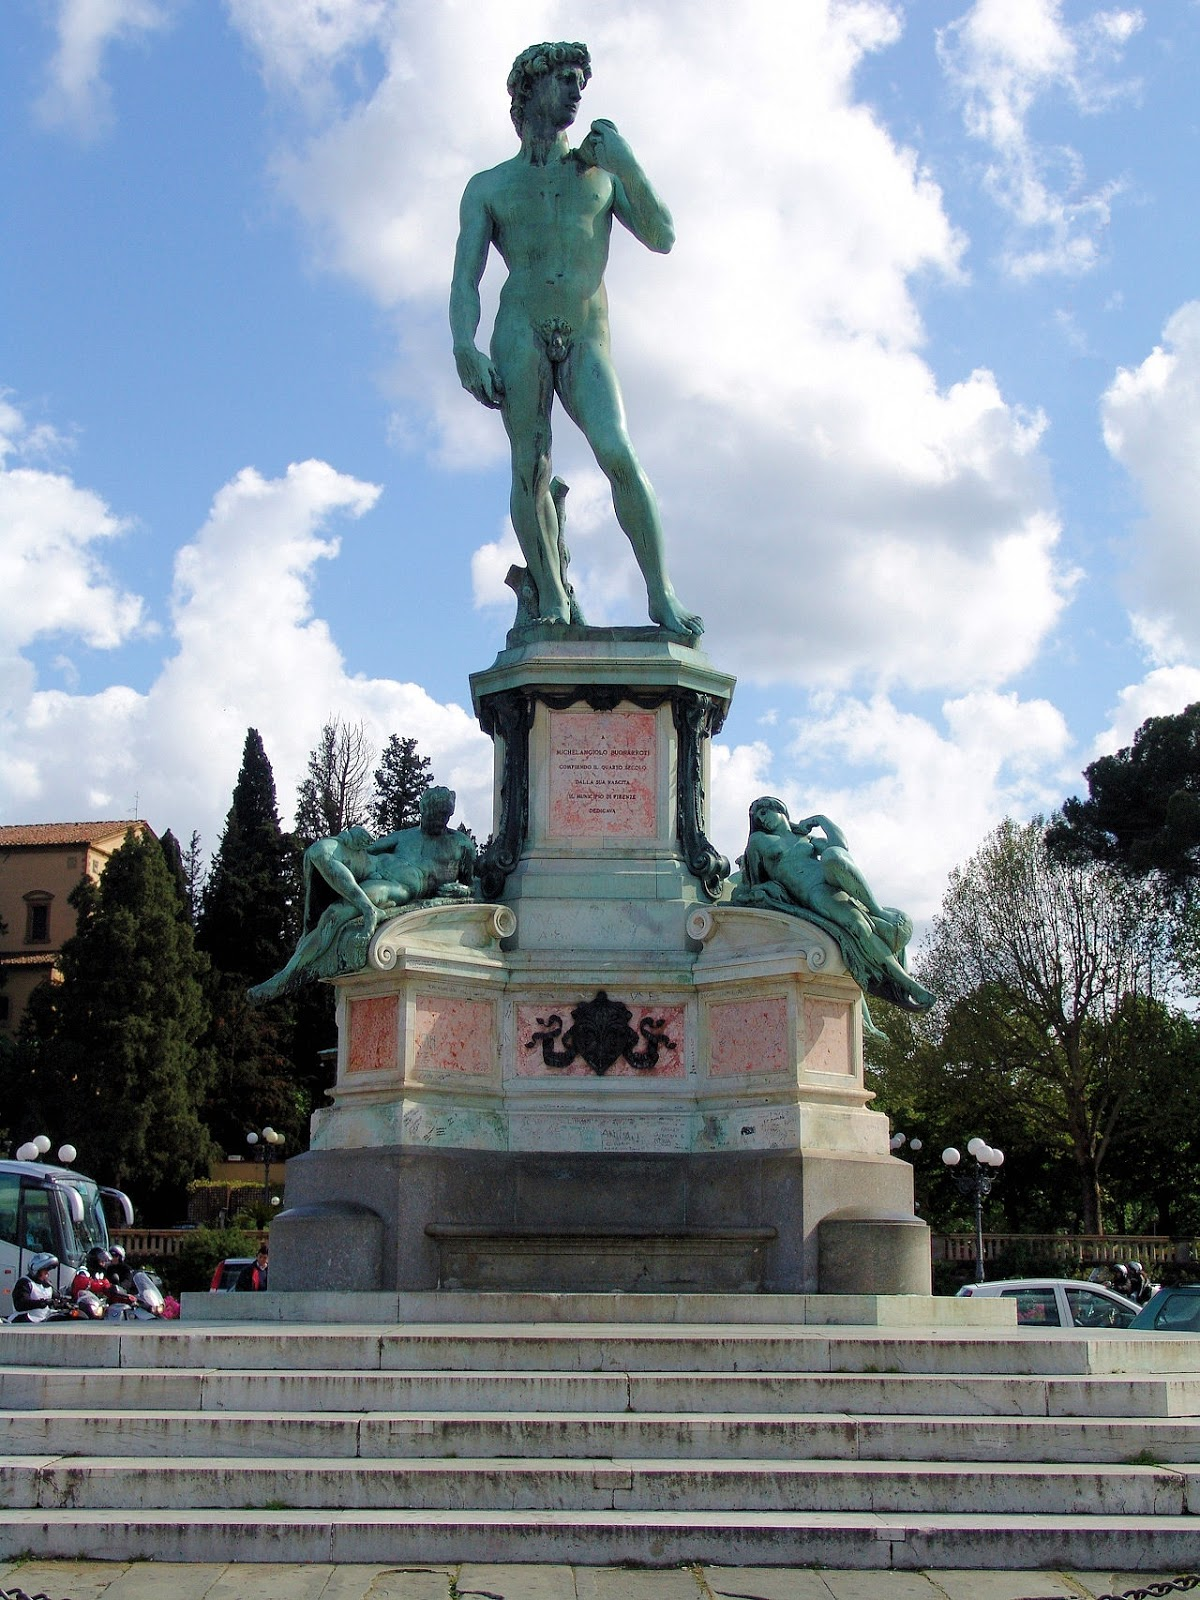 Replica of Michelangelo's 'David' at the Piazzale Michelangelo in Oltrarno. Photo: WikiMedia.org.